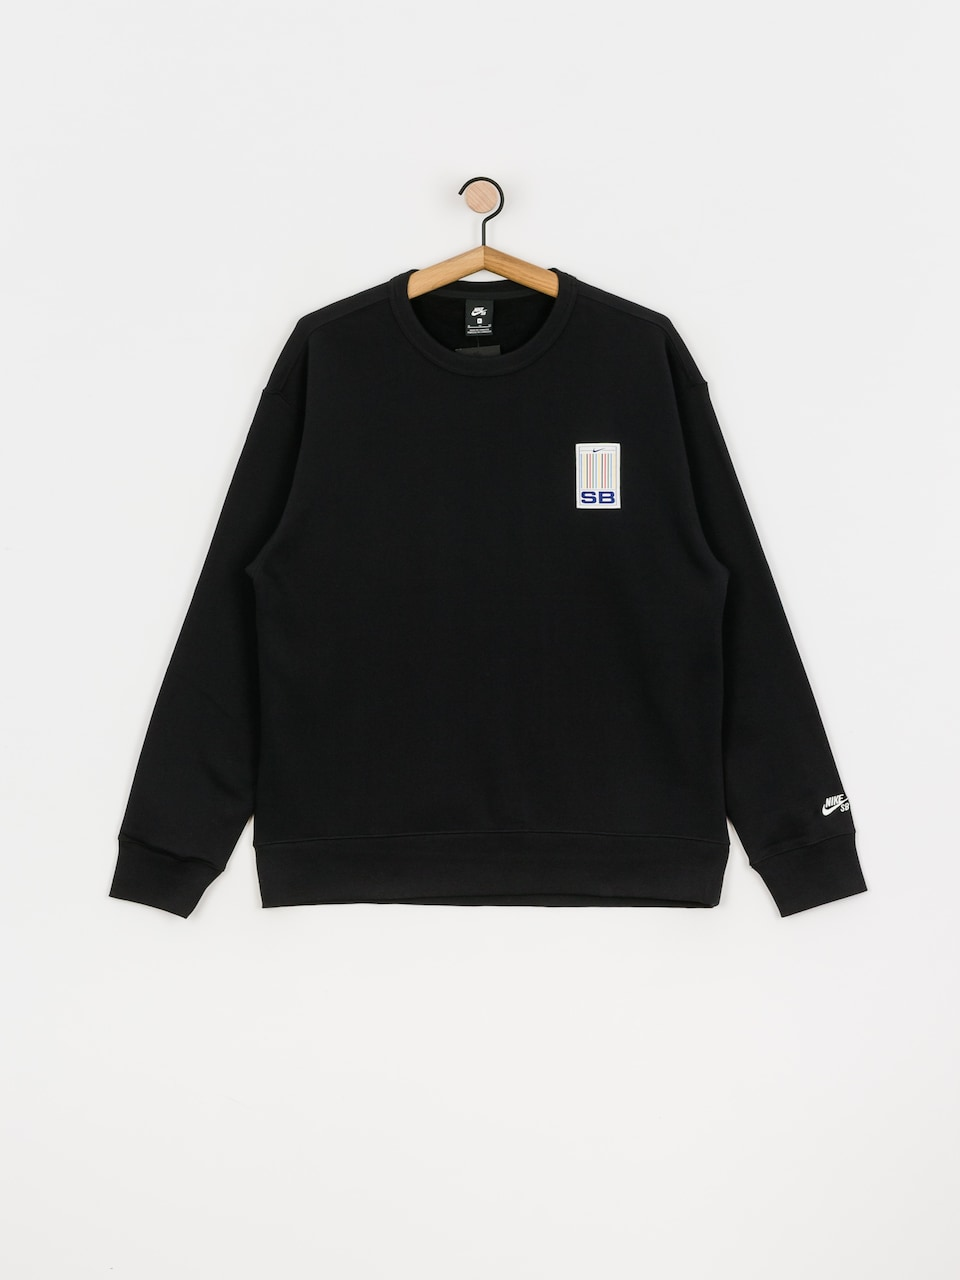 Nike SB Stripes Crew Sweatshirt (blackwhite)